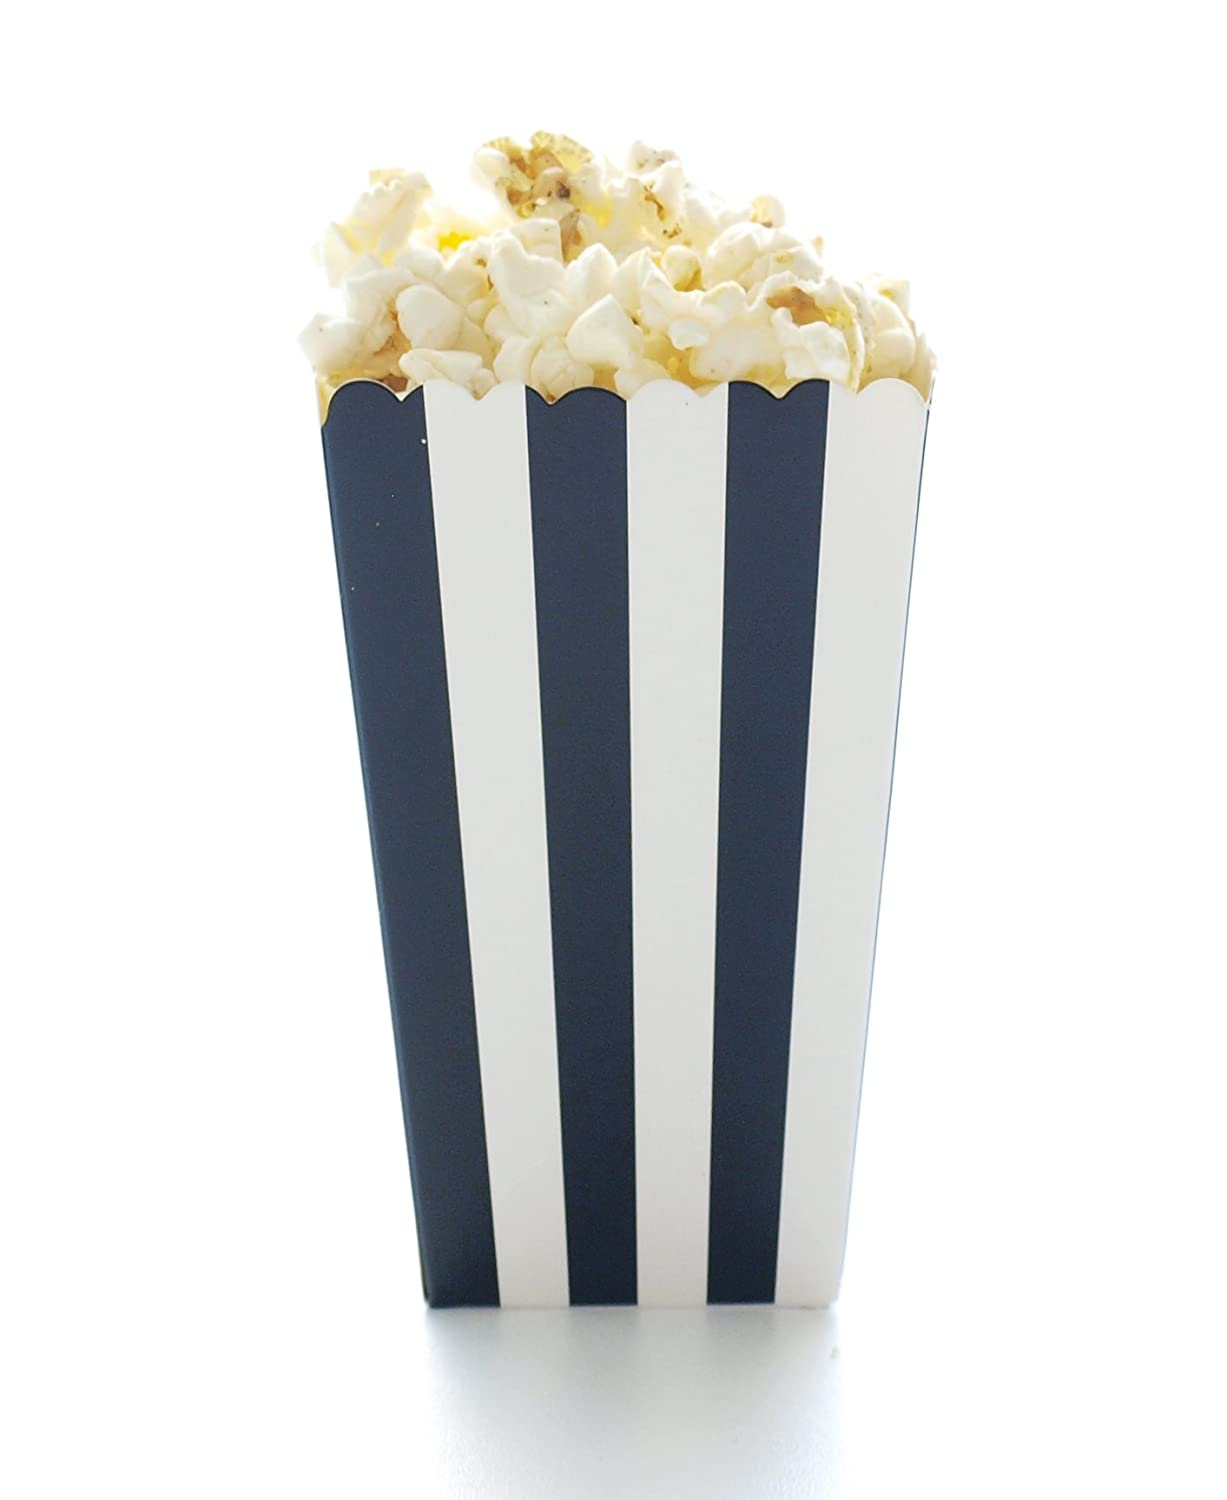 Amazon.com: Popcorn Boxes, Black Design Trio (36 Pack) - Movie ...